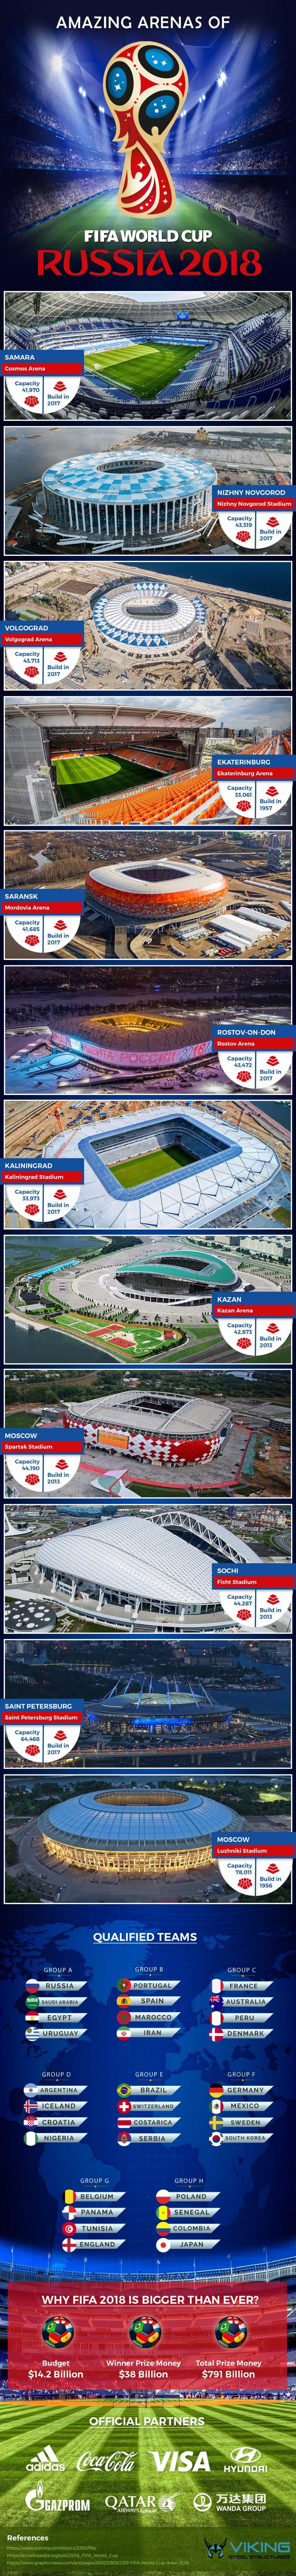 Amazing Arenas of FIFA World Cup Russia 2018